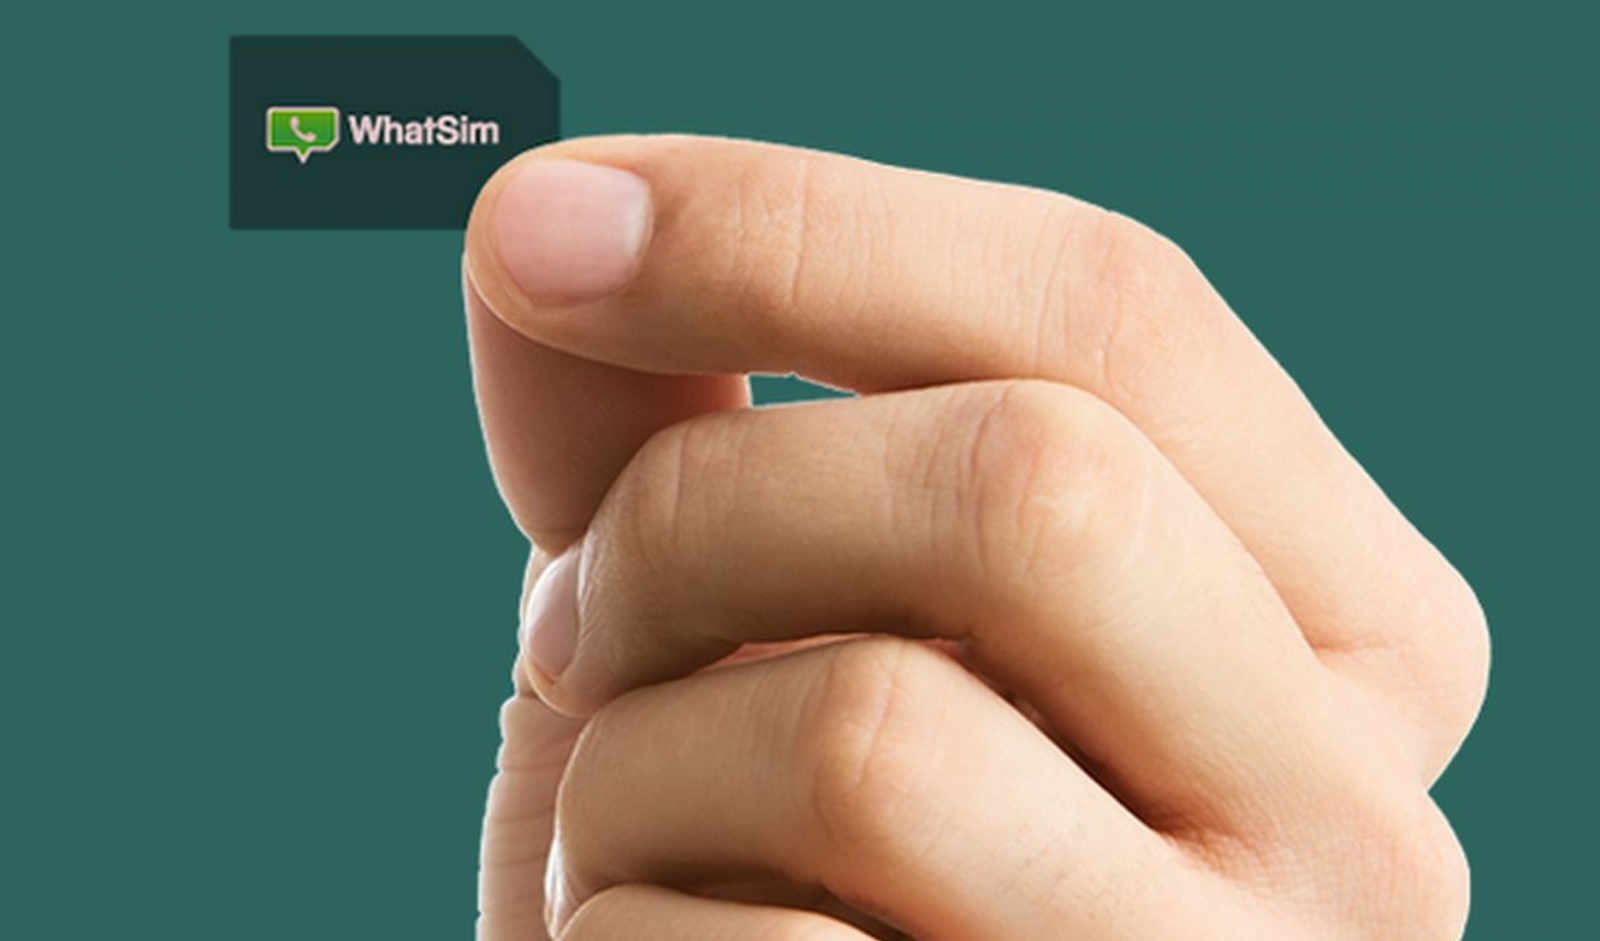 WhatSim launched for access to WhatsApp anywhere